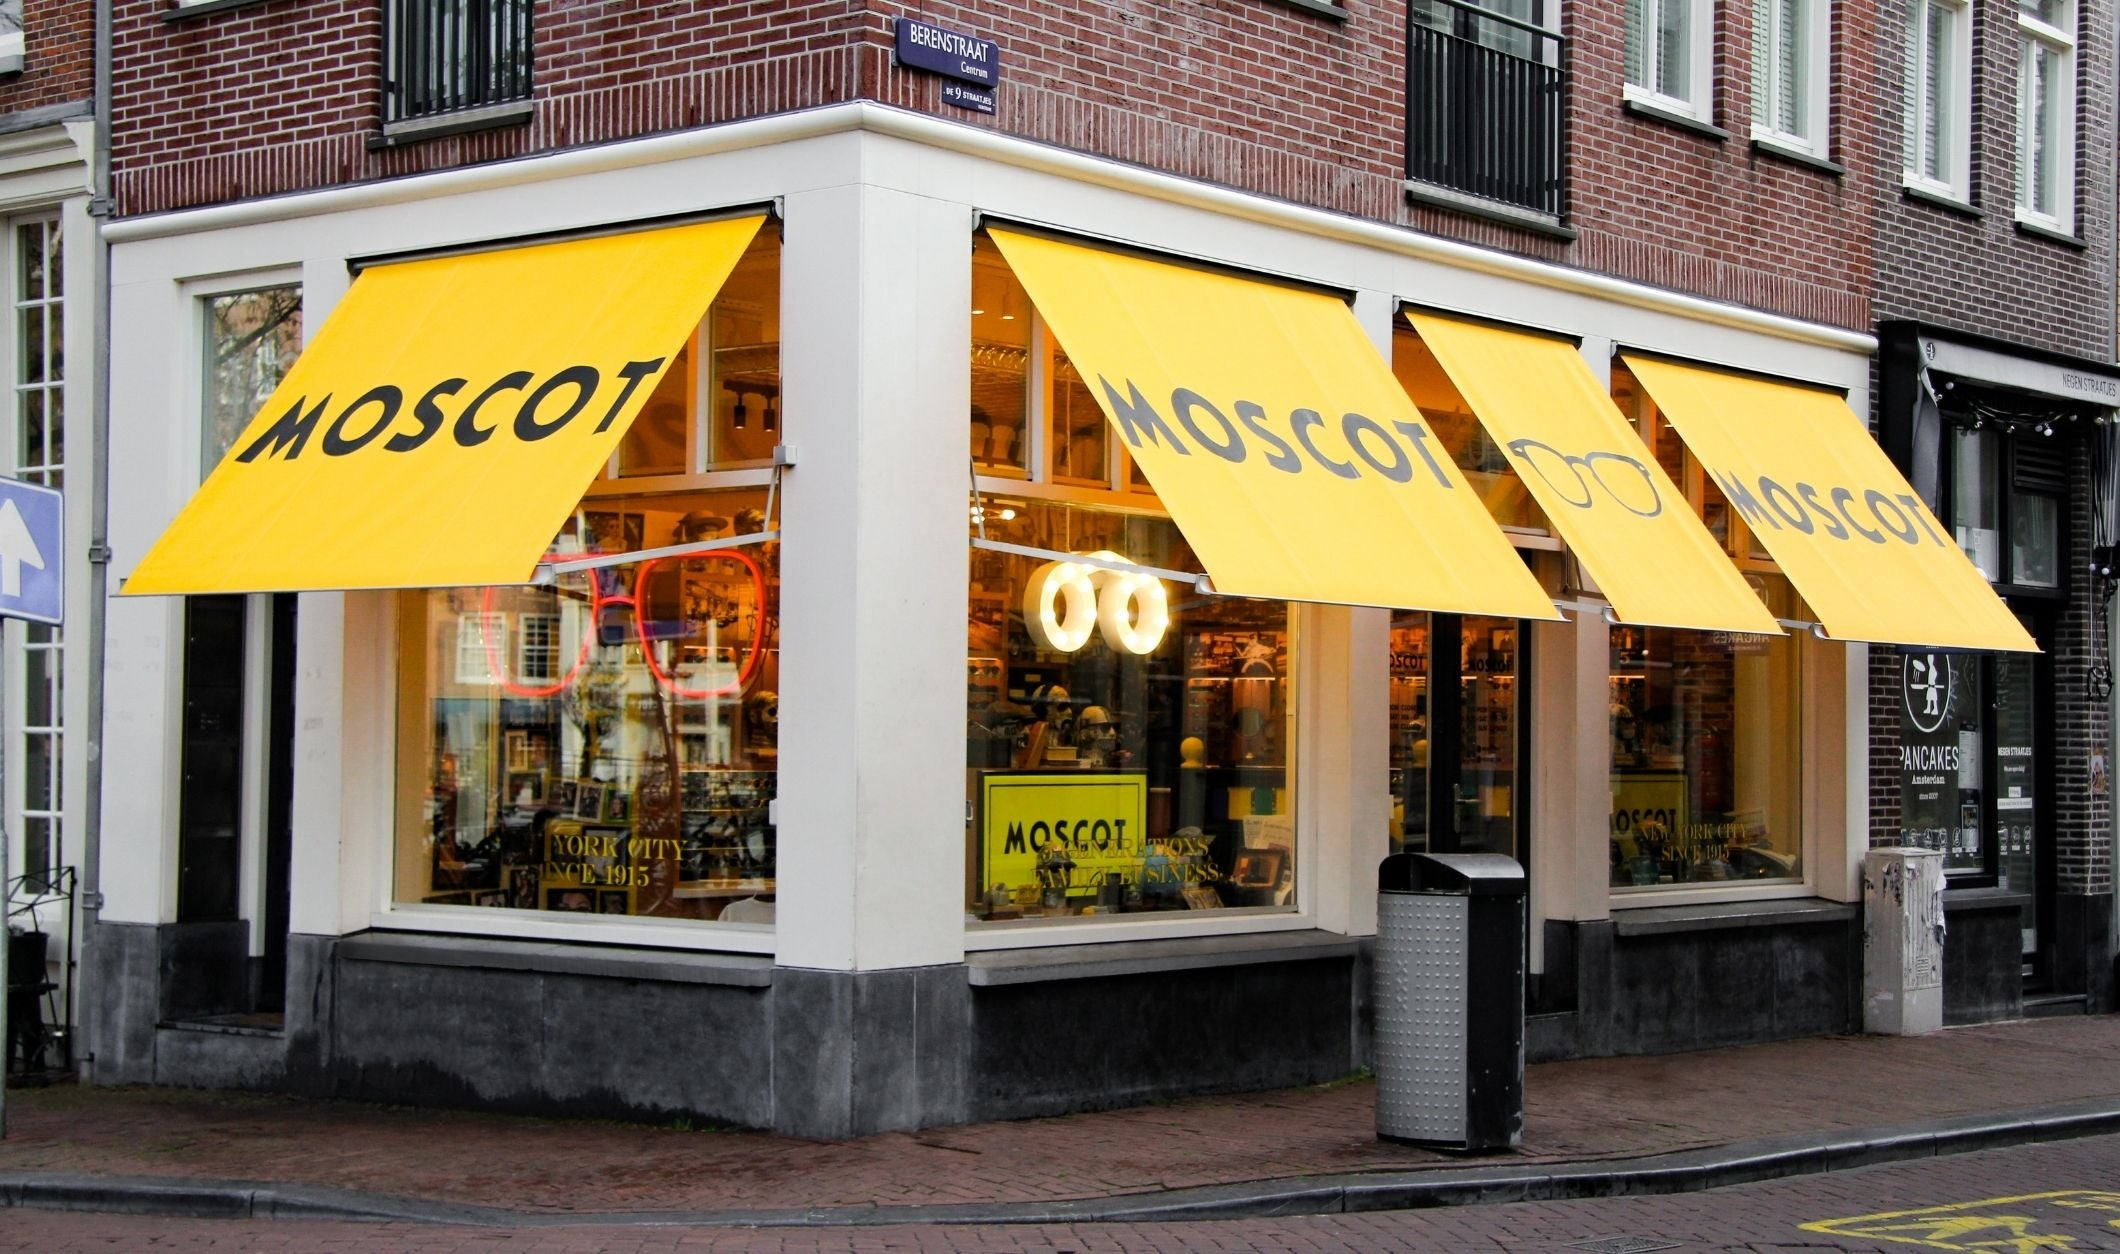 MOSCOT Amsterdam